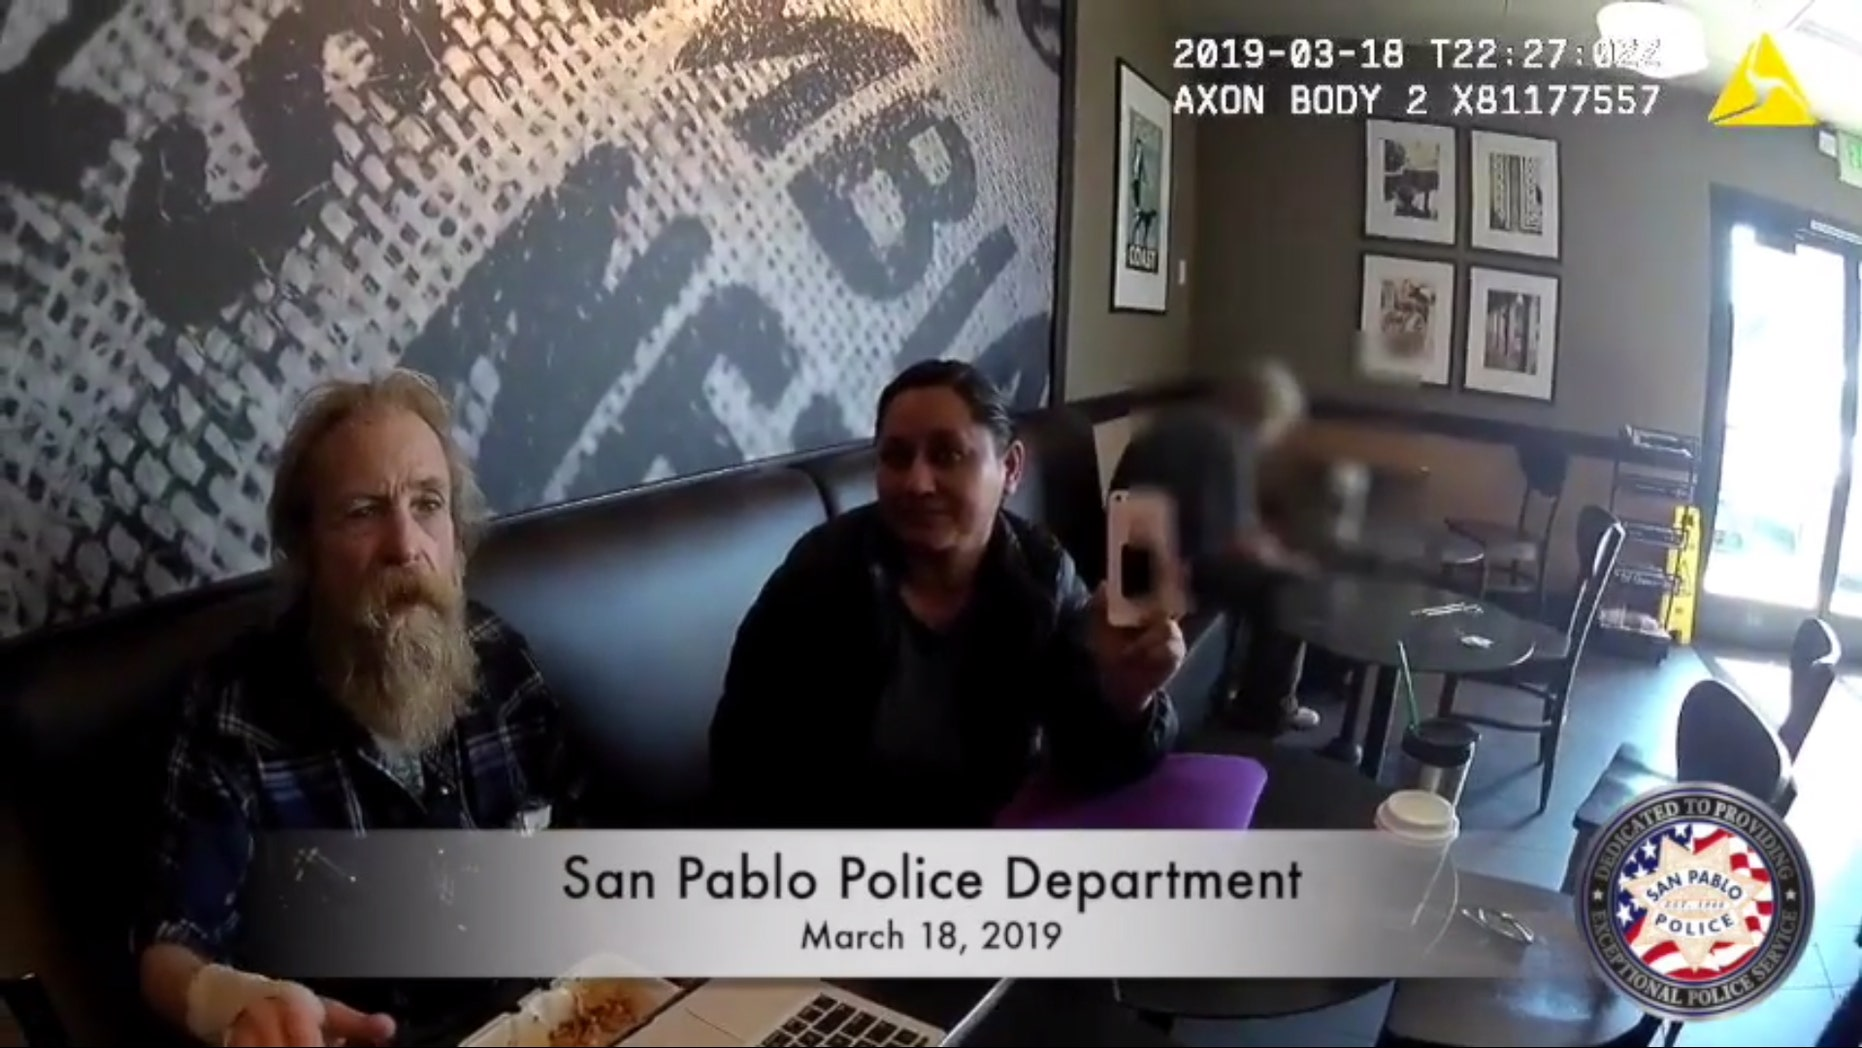 Westlake Legal Group SanPablo1 Police threaten to arrest Starbucks customer after mistaking her for different woman, body-cam footage shows Michael Bartiromo fox-news/food-drink/drinks/coffee fox news fnc/food-drink fnc article 7fd4beae-bc93-593c-a655-a8ba6d976bbd